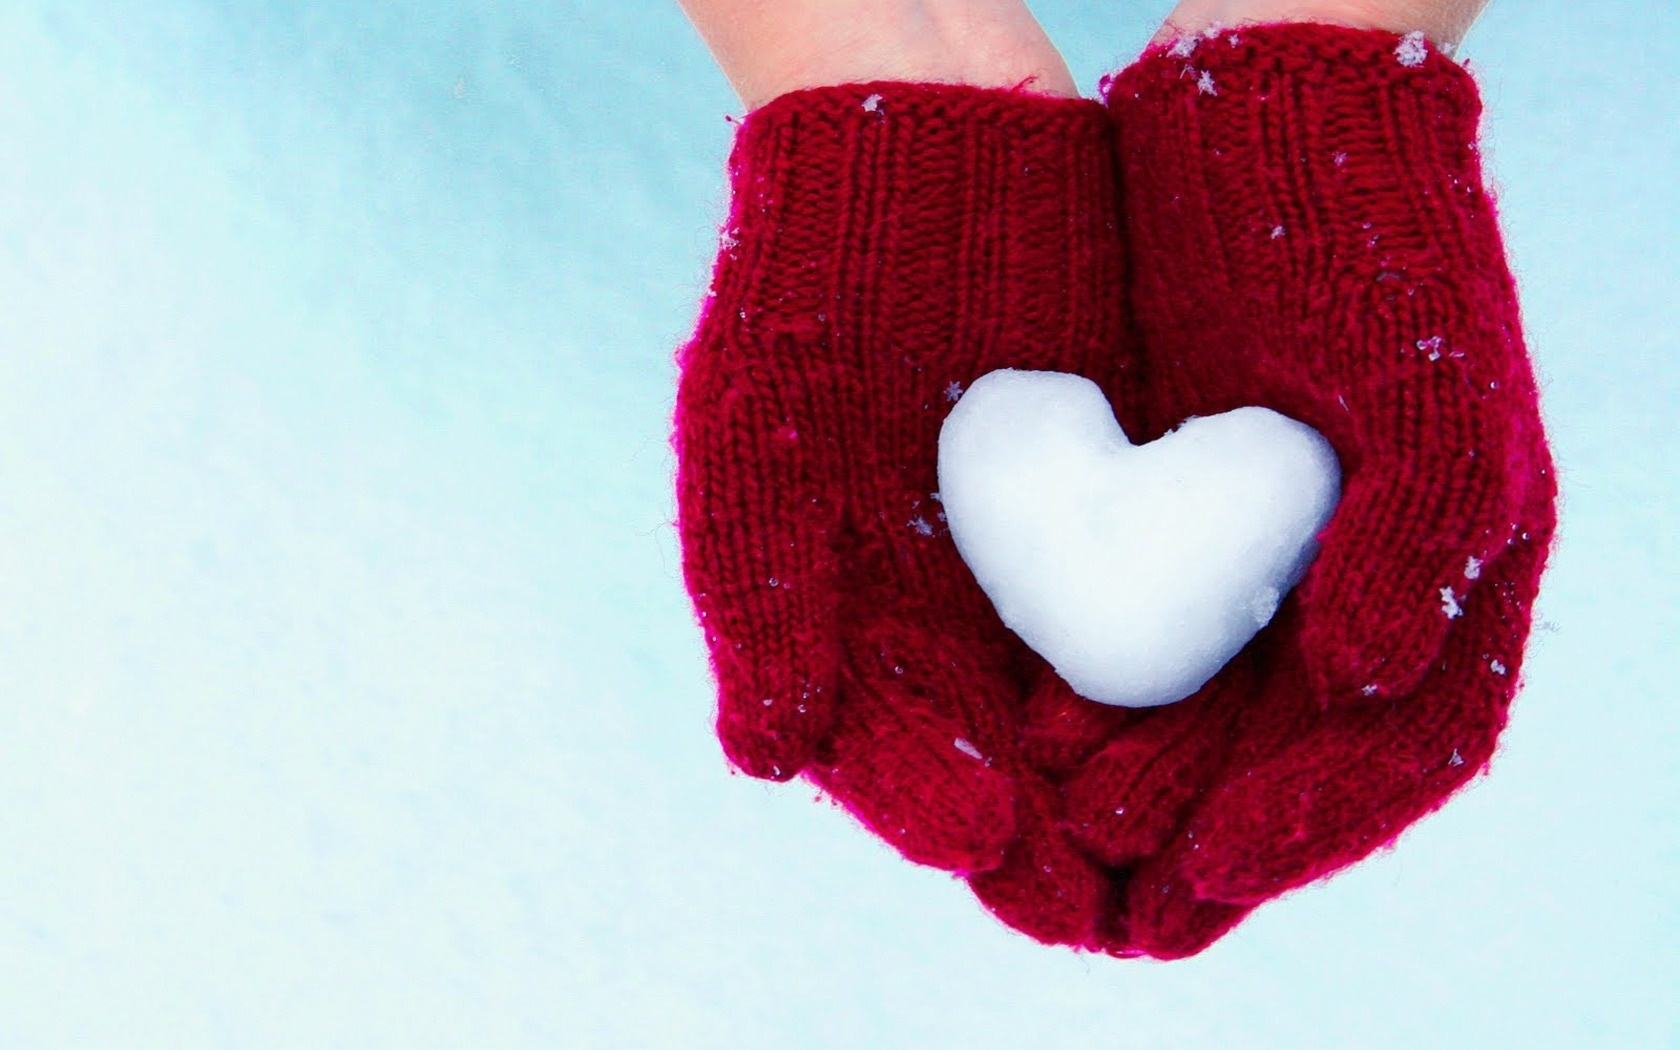 heart_snow_arms_mittens_11095_1680x1050